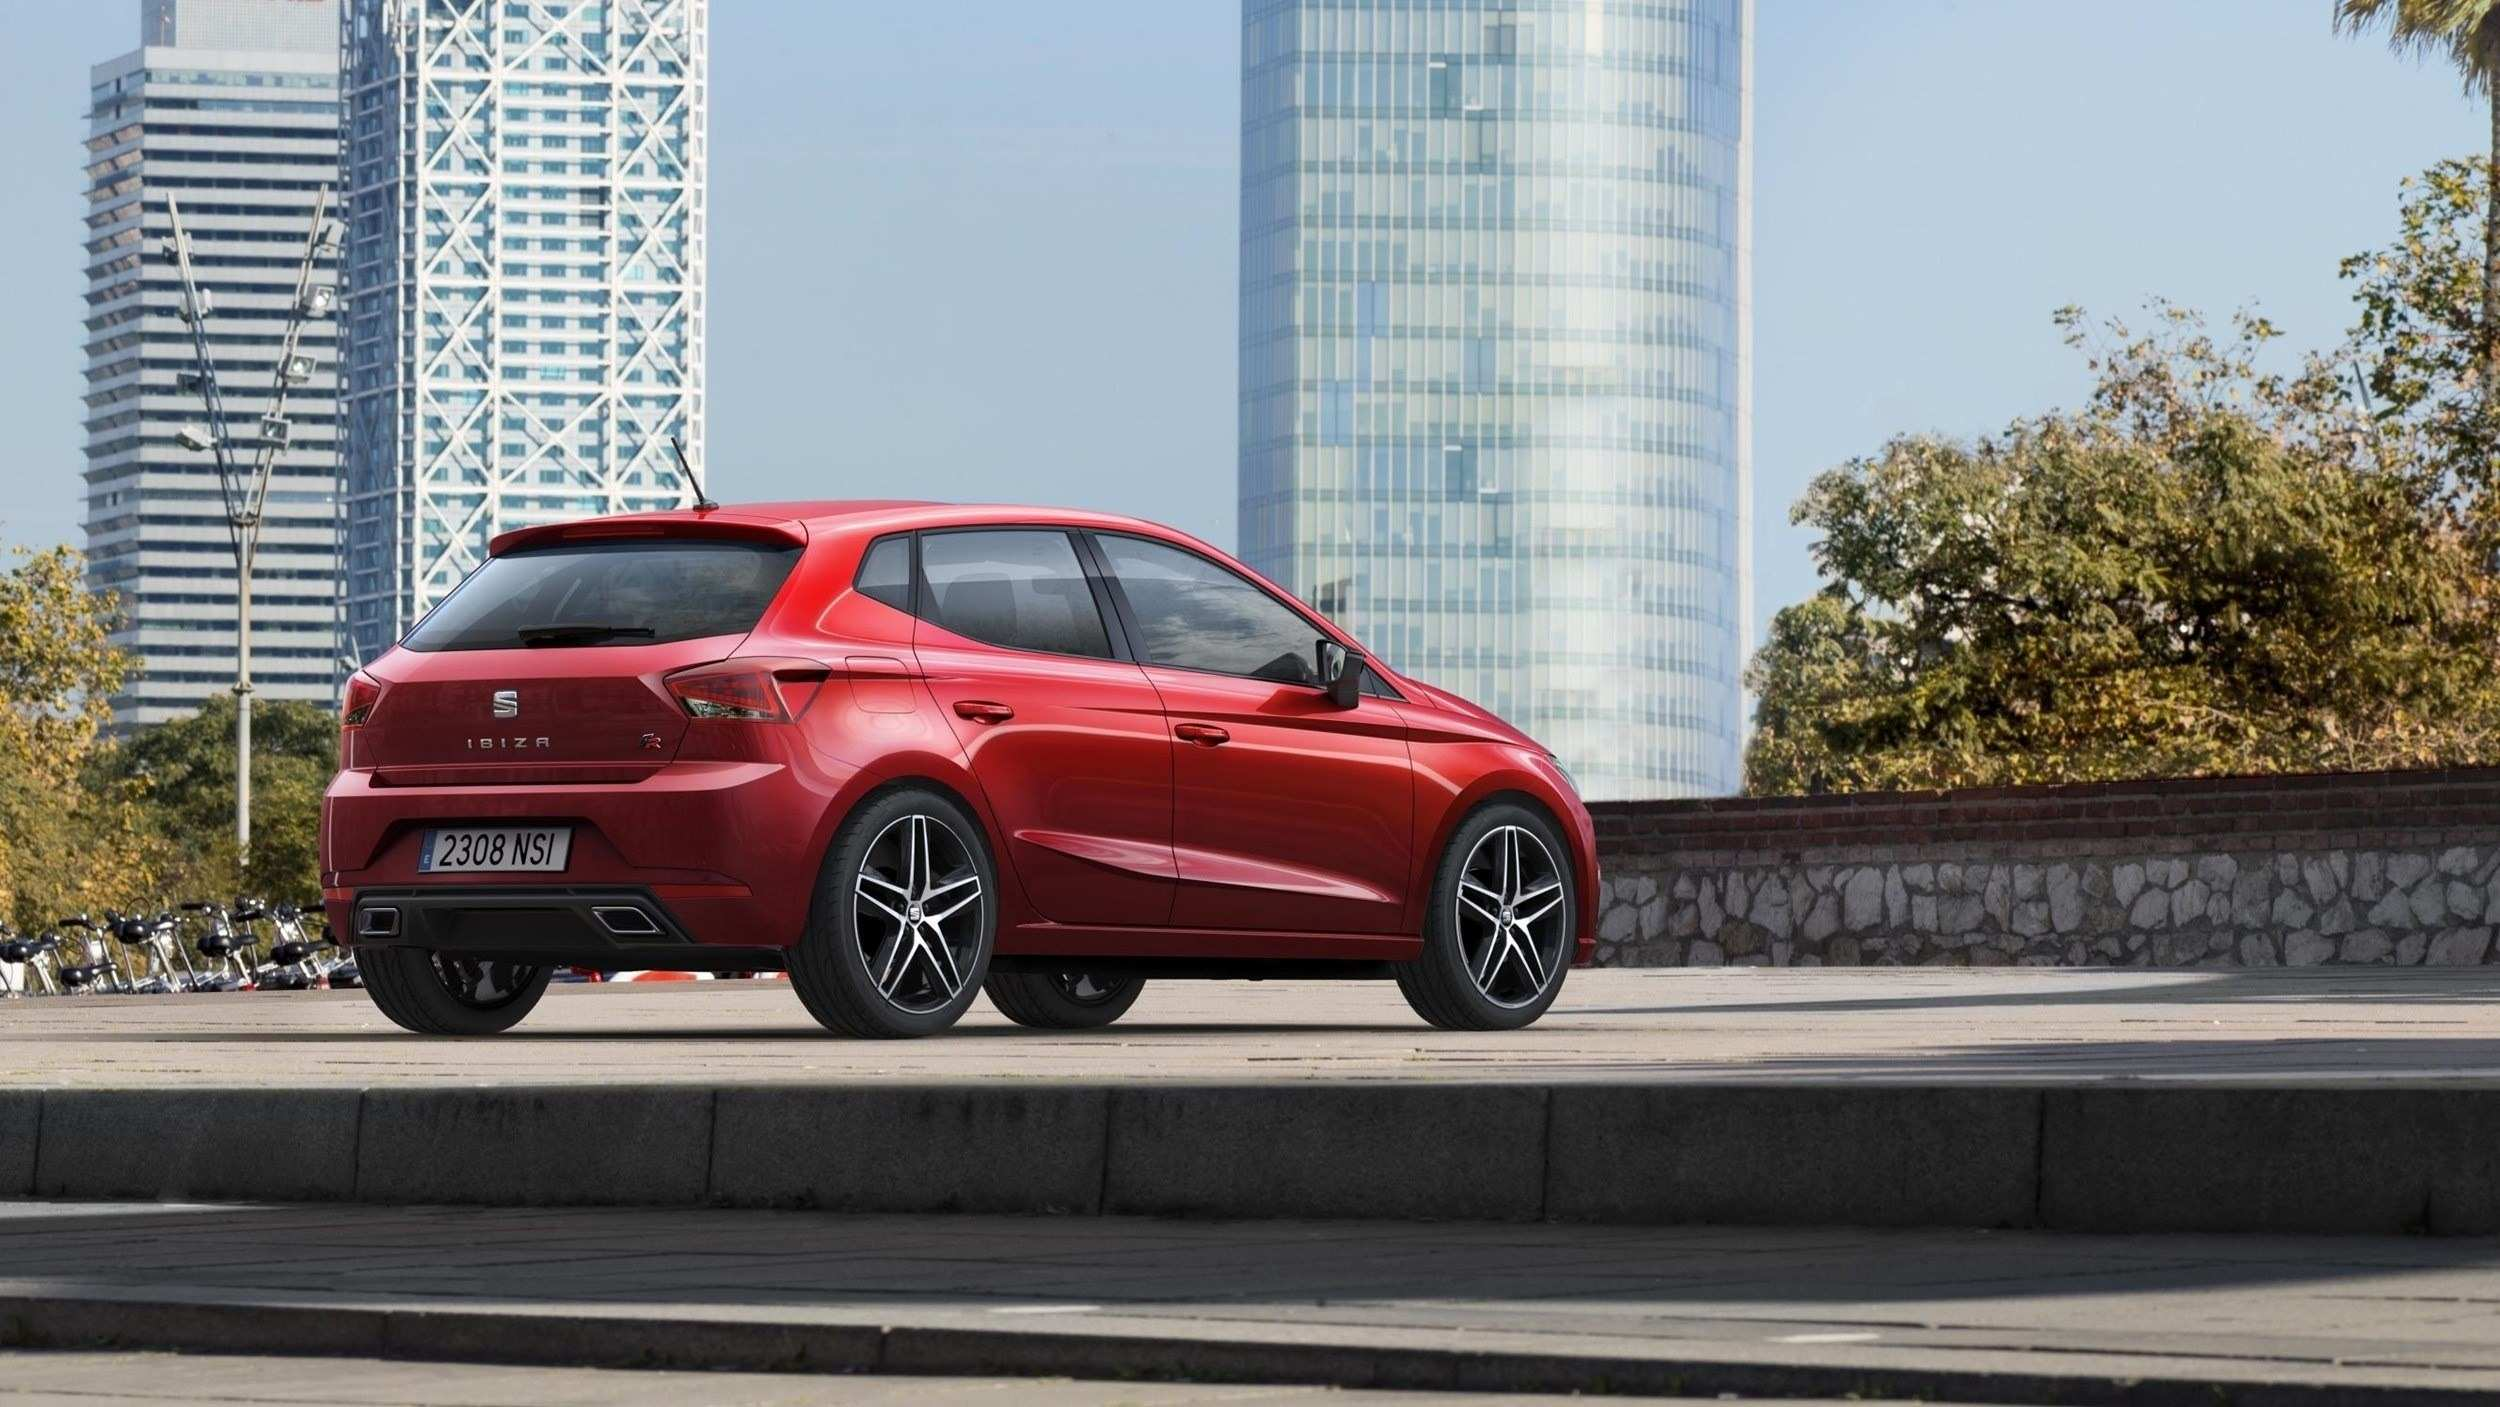 97 Gallery of 2019 New Seat Ibiza Egypt Mexico Price and Review by 2019 New Seat Ibiza Egypt Mexico